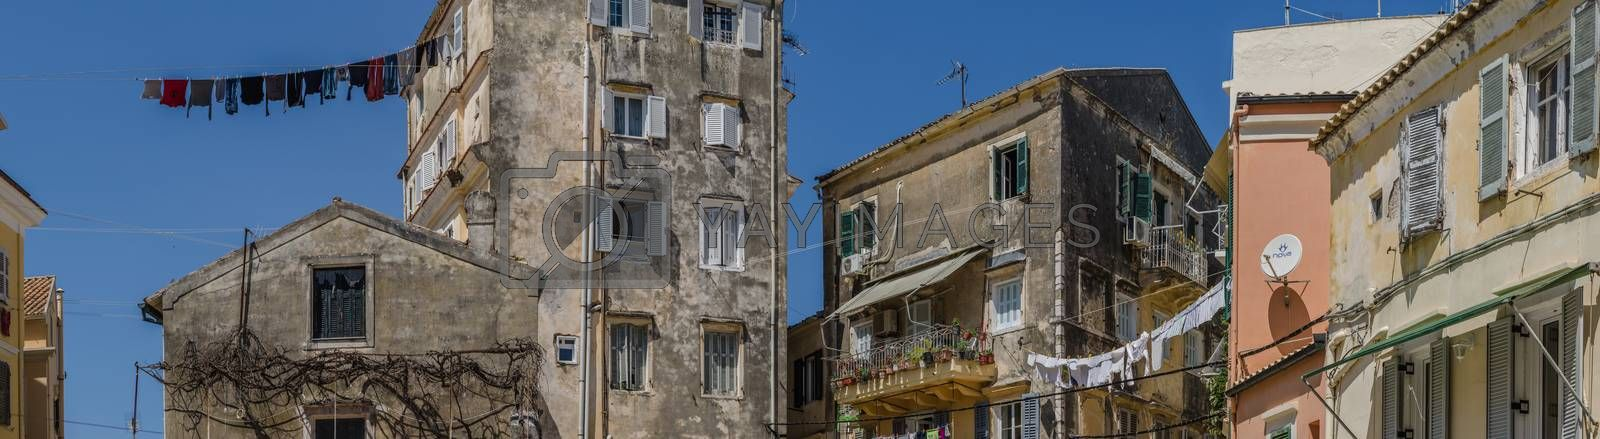 laundry in Corfu town in summer panorama view